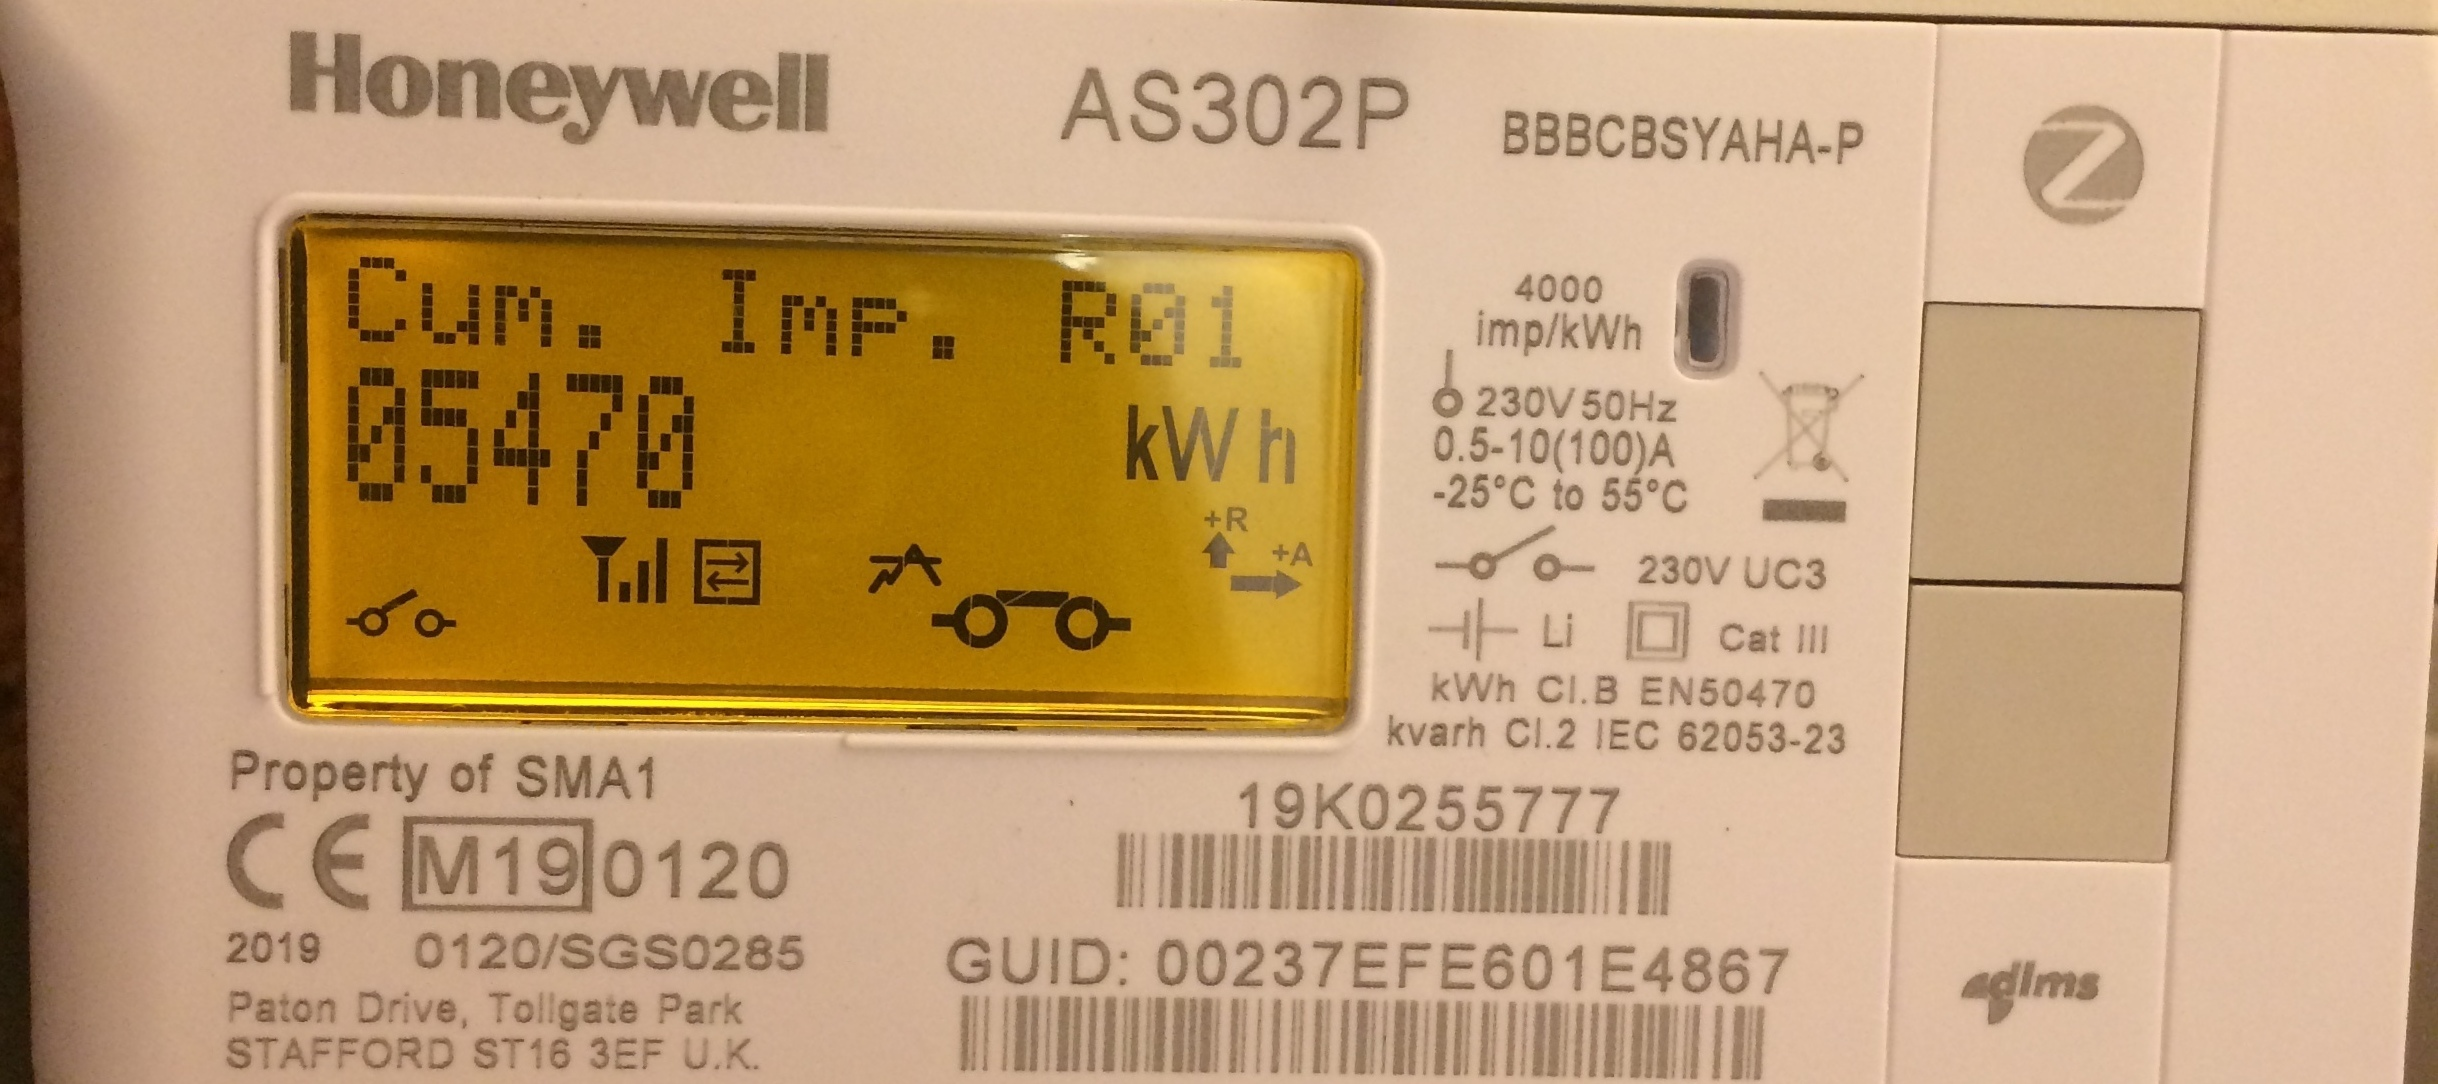 A guide on how to get Day / Night meter readings from a Honeywell AS302P S2 smart meter